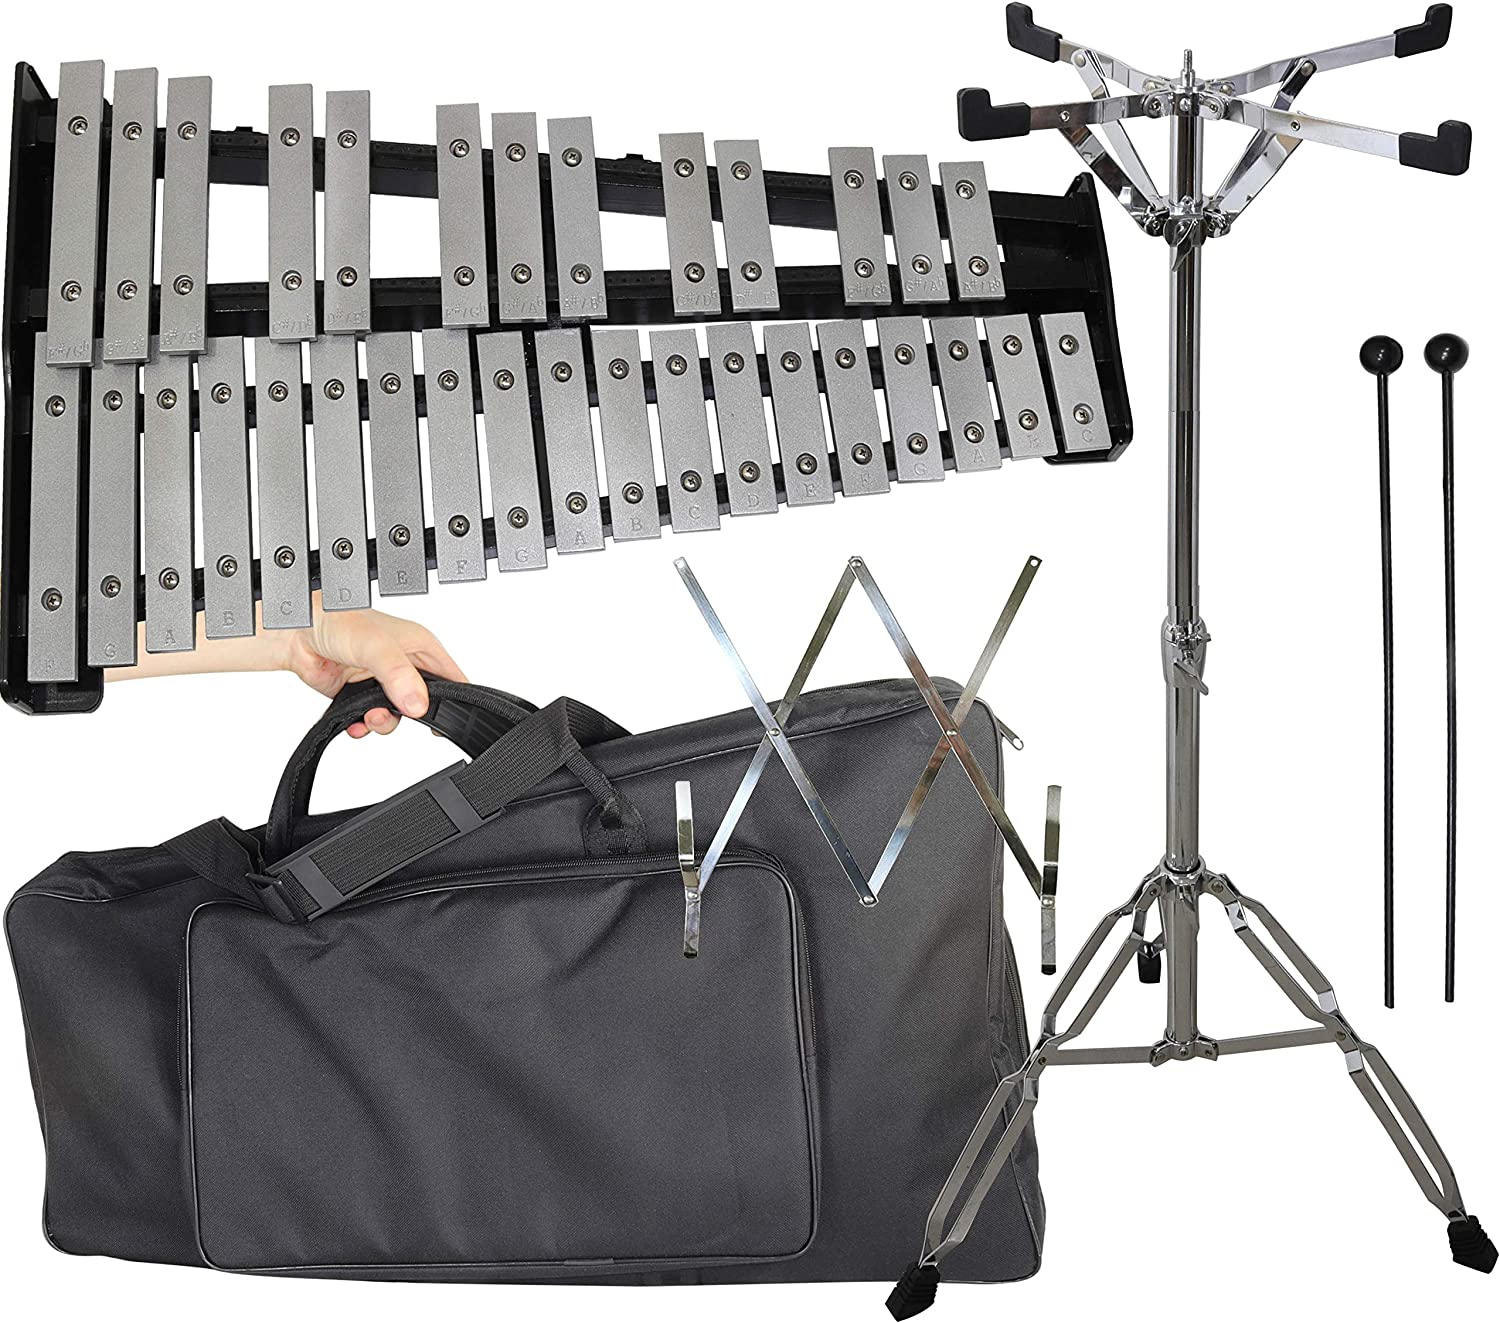 32 keys Glockenspiel Professional xylophone with Stand, Bag, Note Holder, Rubber Mallets